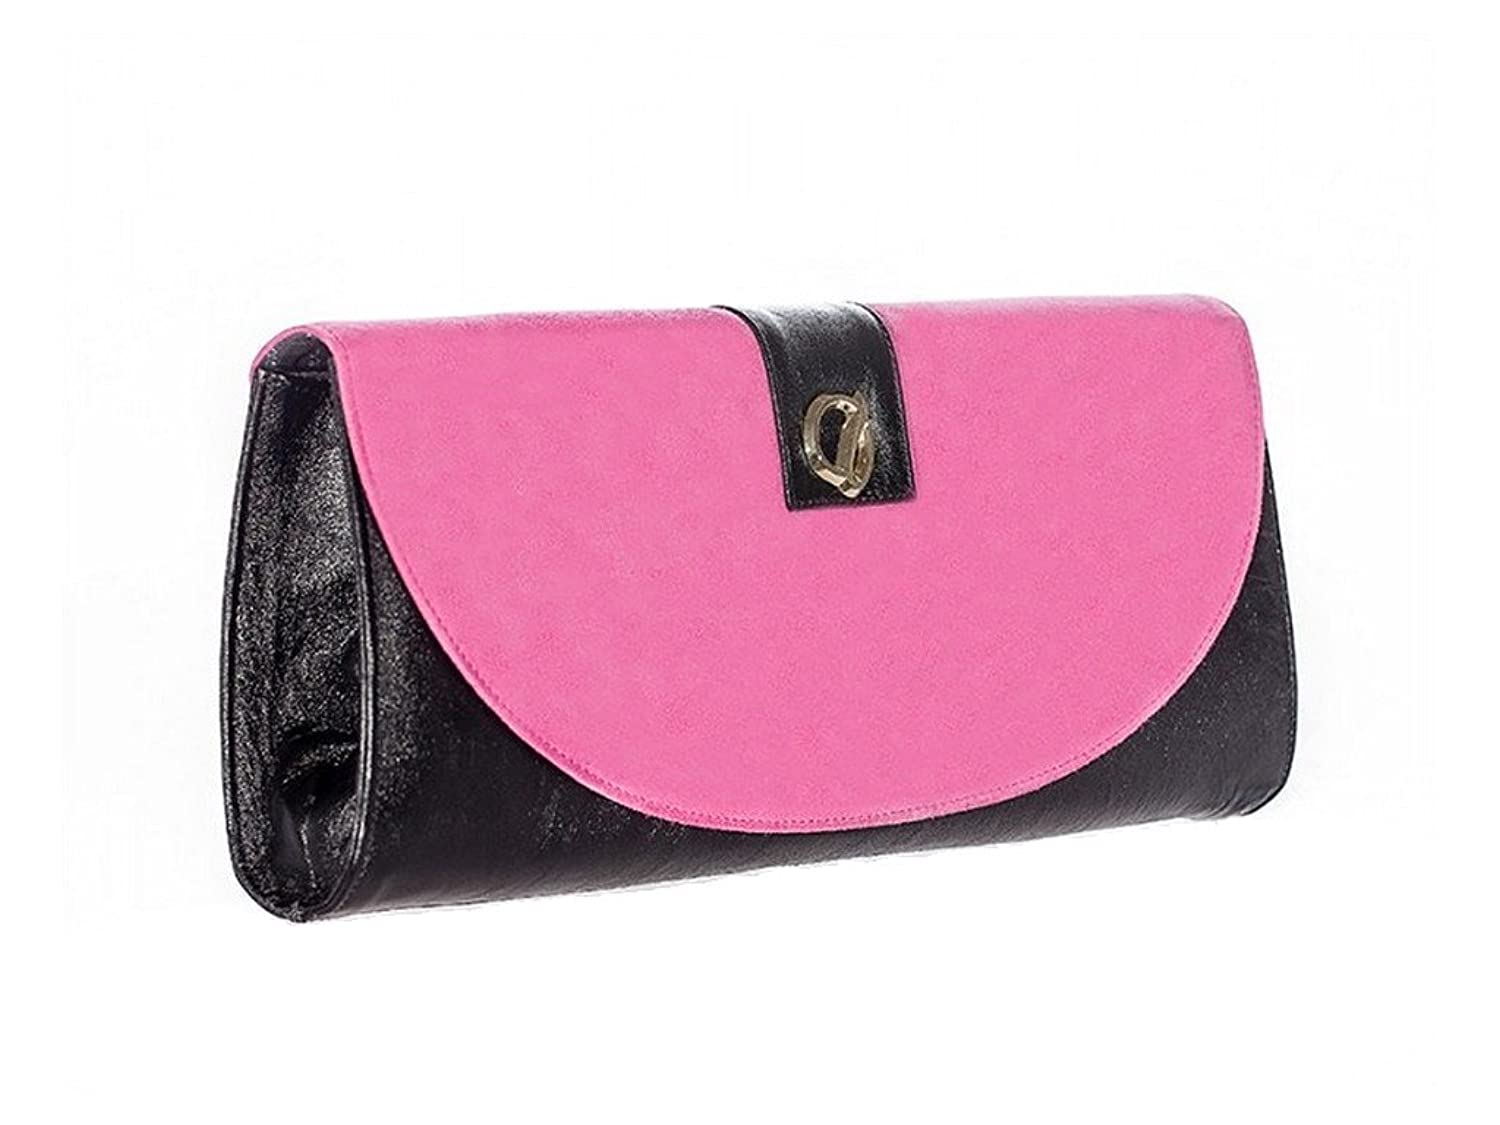 This Beautiful Clutch That Can Take You From Drinks with Friends to the Gala.